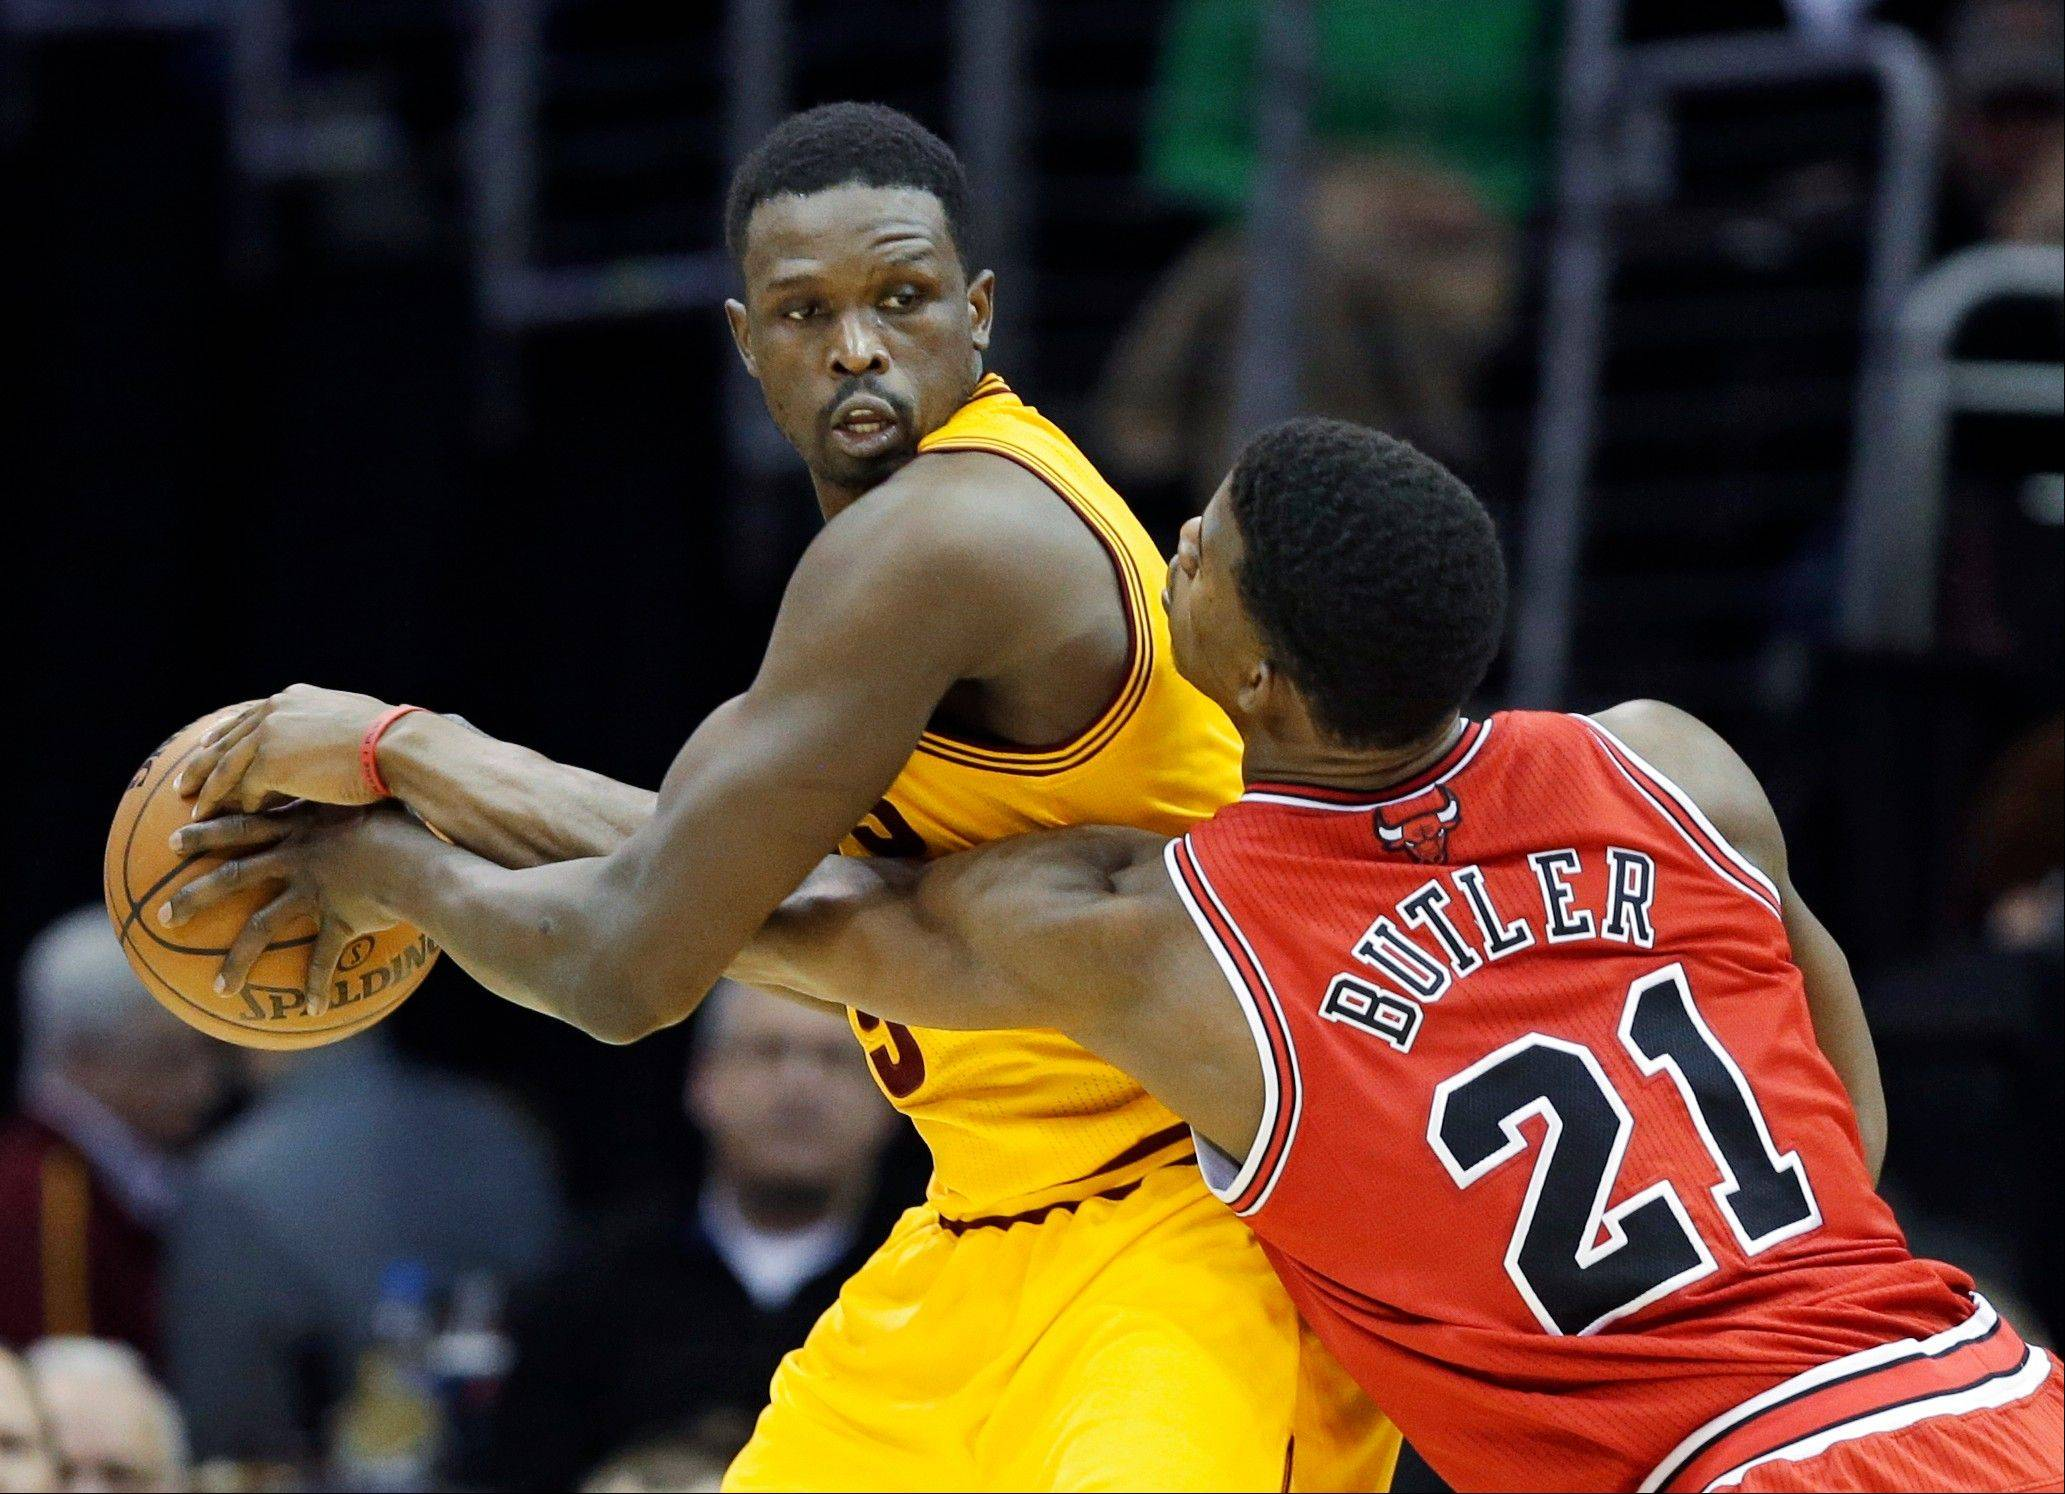 The Bulls� Jimmy Butler (21) tries to poke the ball away from Cleveland Cavaliers� Luol Deng during Wednesday night�s game in Cleveland. The Bulls won 98-87.